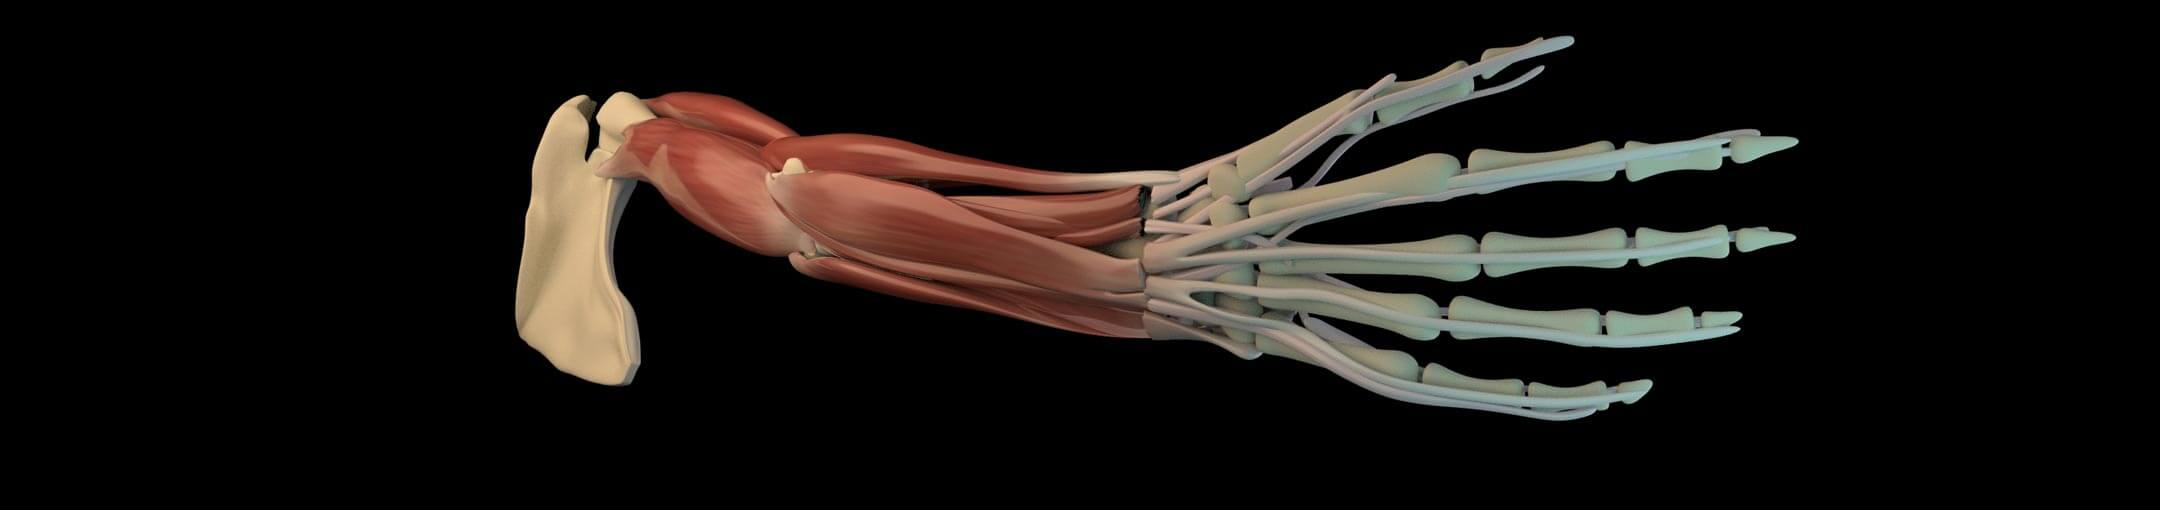 Artist's medical illustration of the bones, muscles, ligaments, and tendons in a human arm.